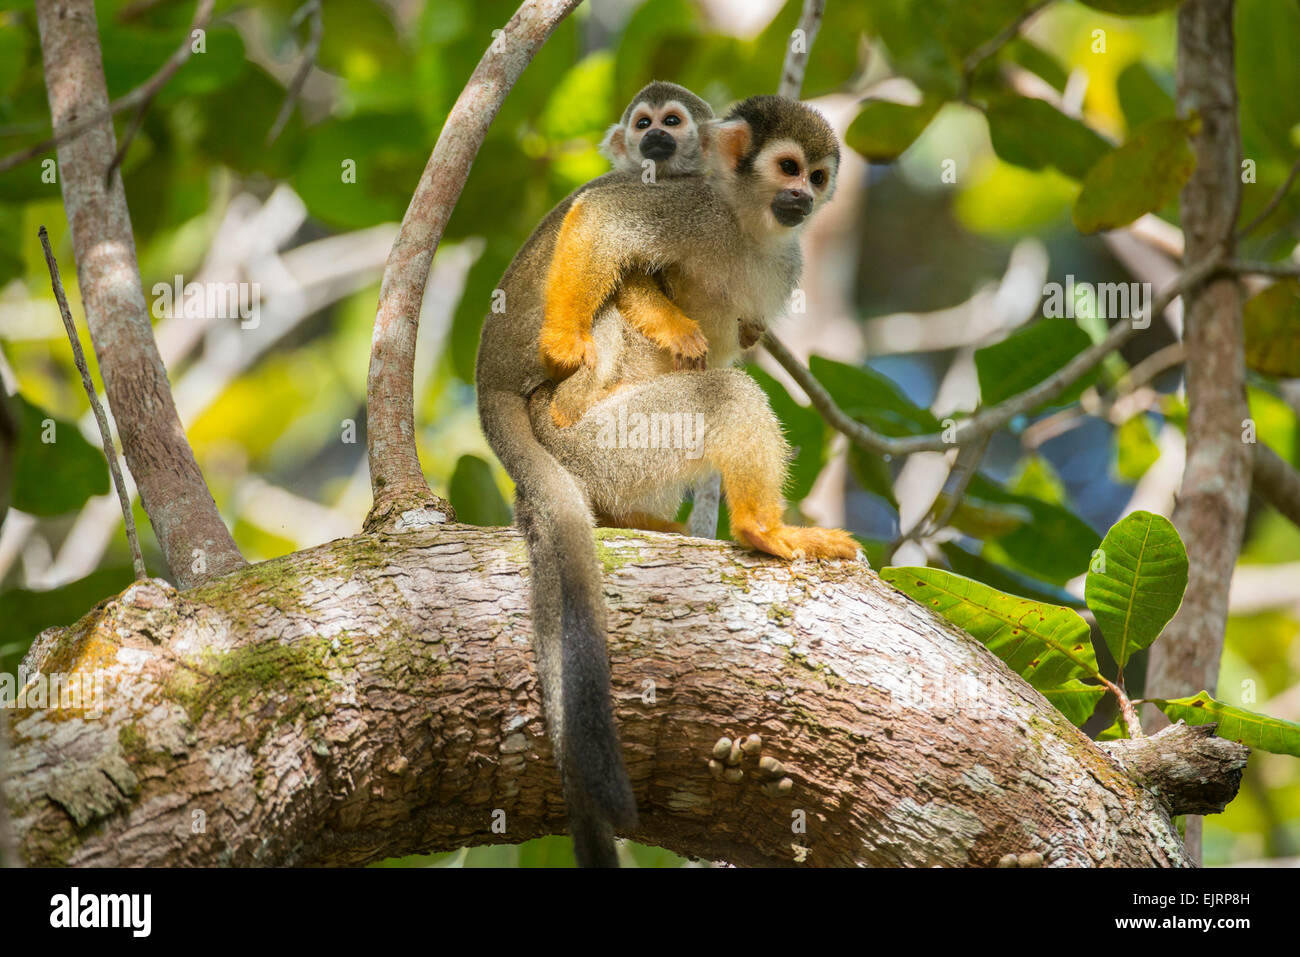 Squirrel monkey with young, Saimiri, Central Suriname Nature Reserve, Suriname - Stock Image